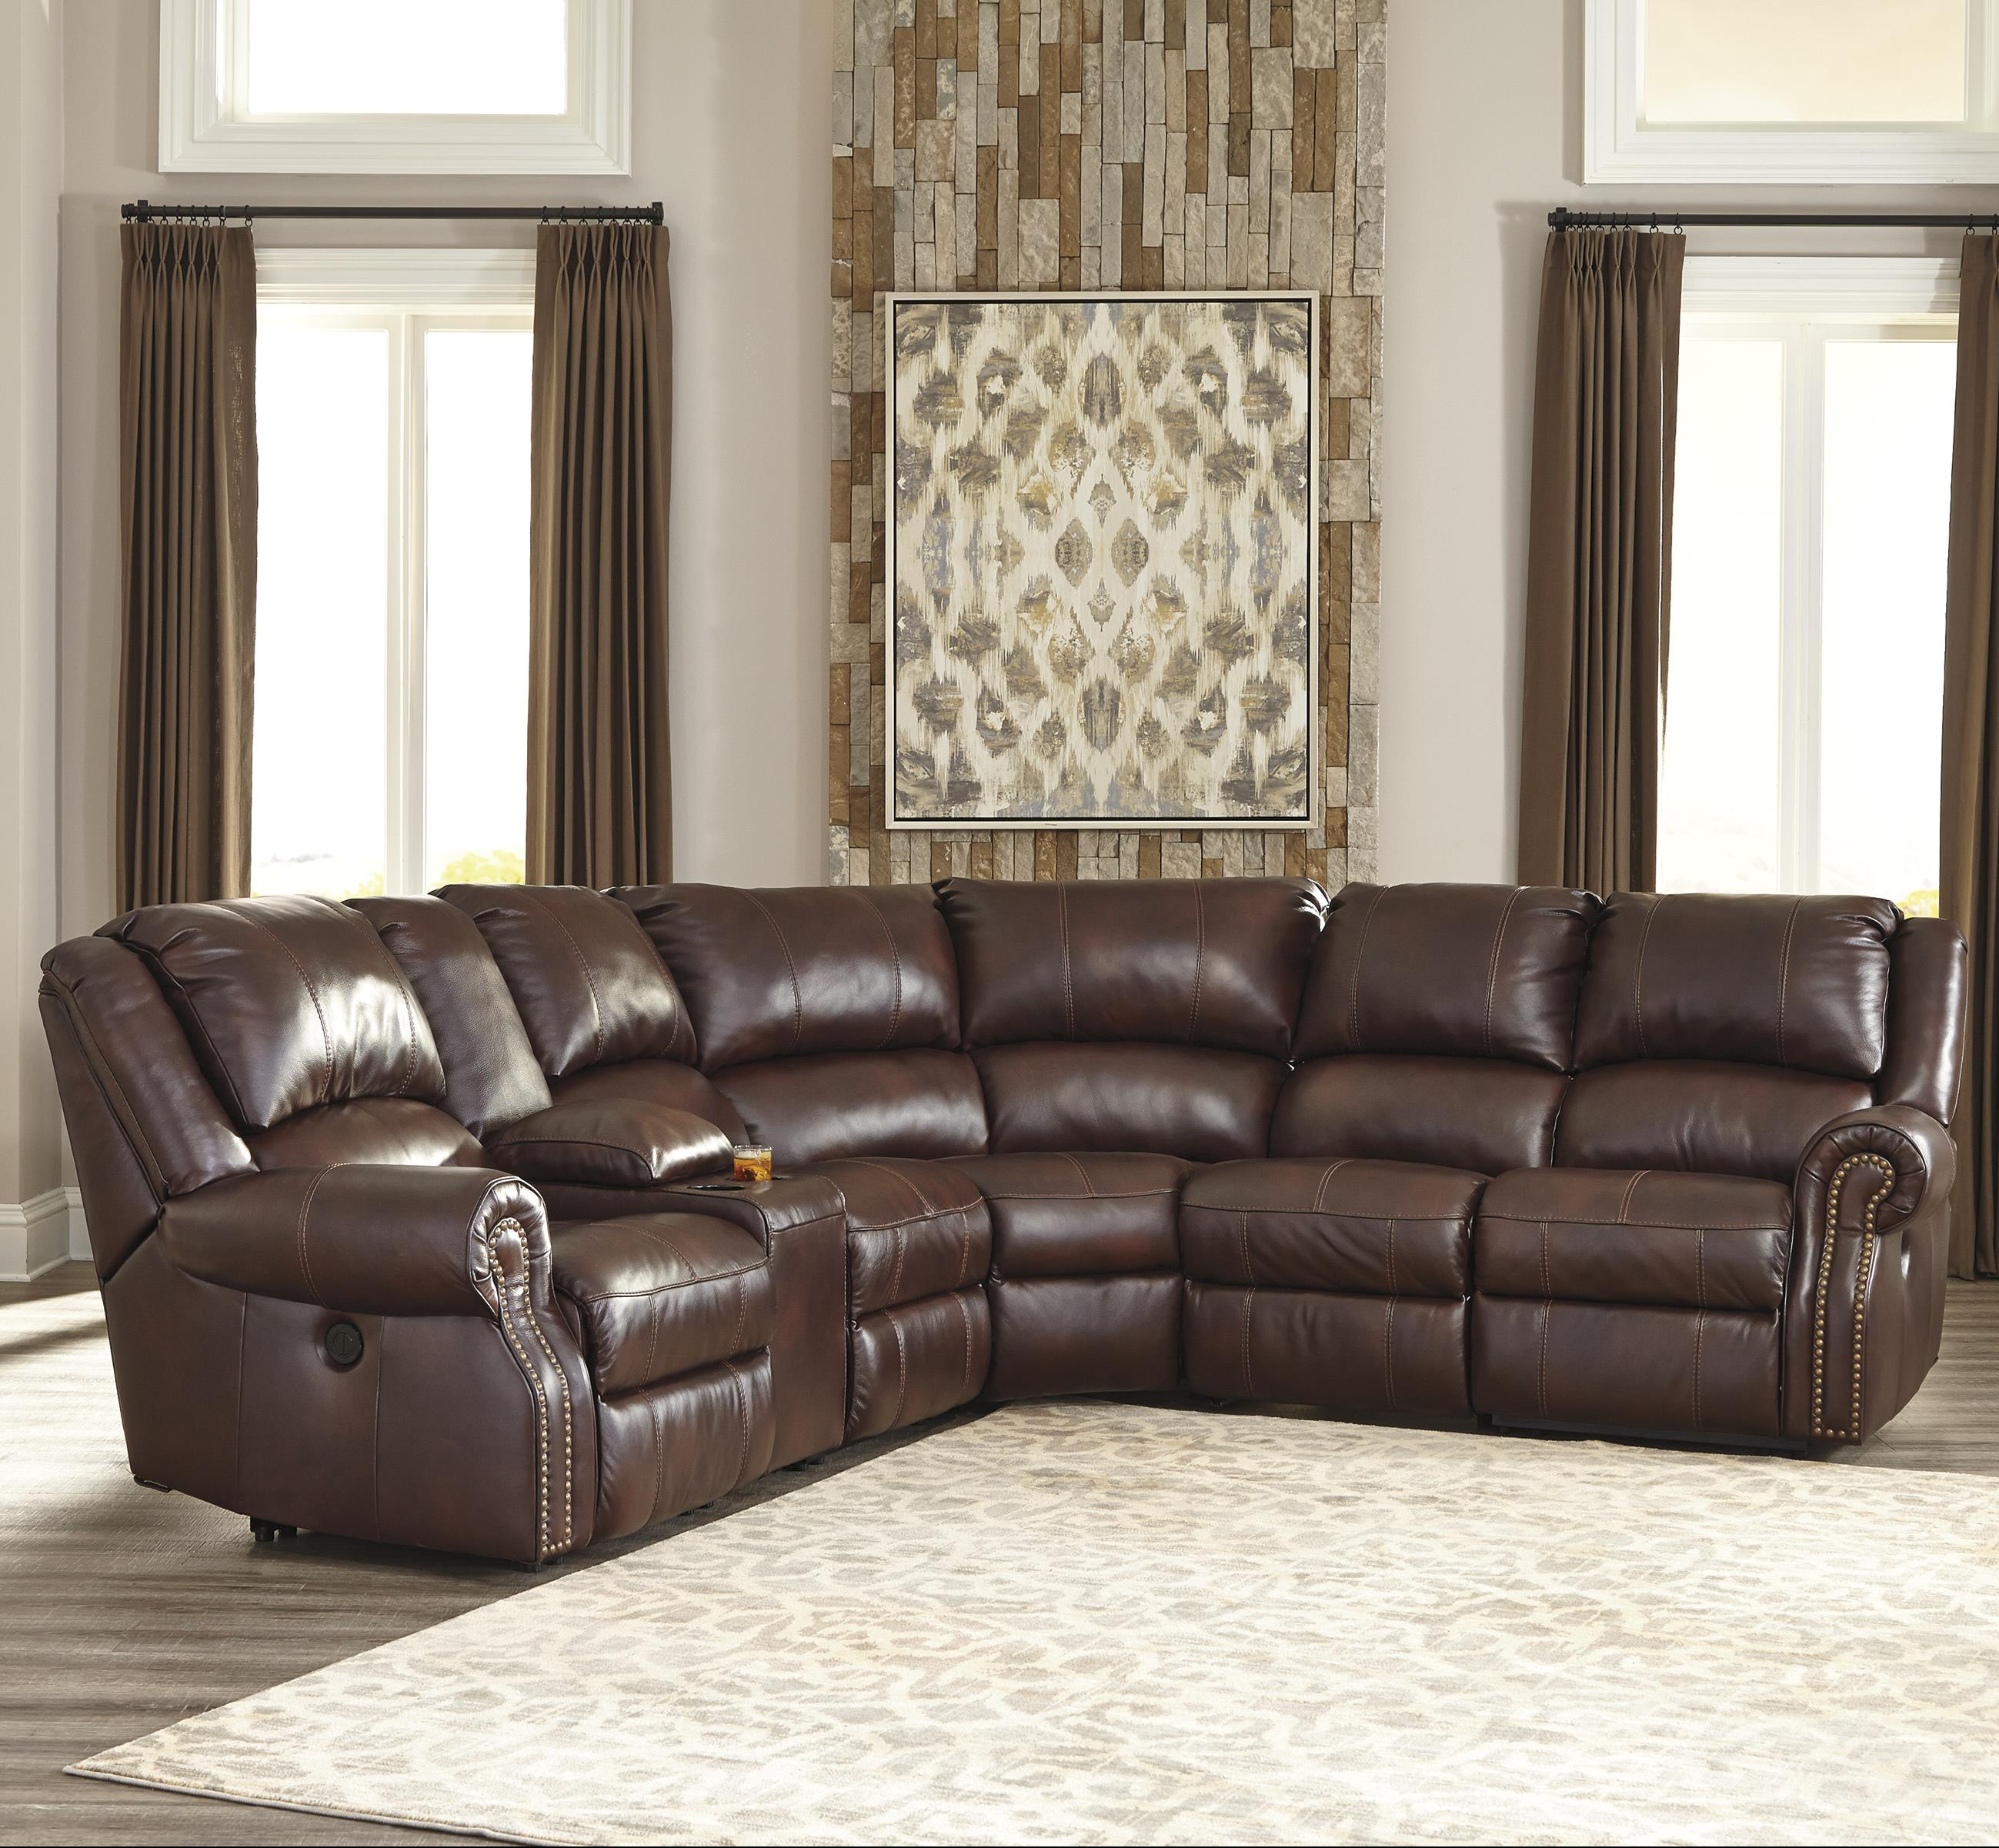 6-Piece Reclining Sectional with Console : ashley reclining sectional - Sectionals, Sofas & Couches